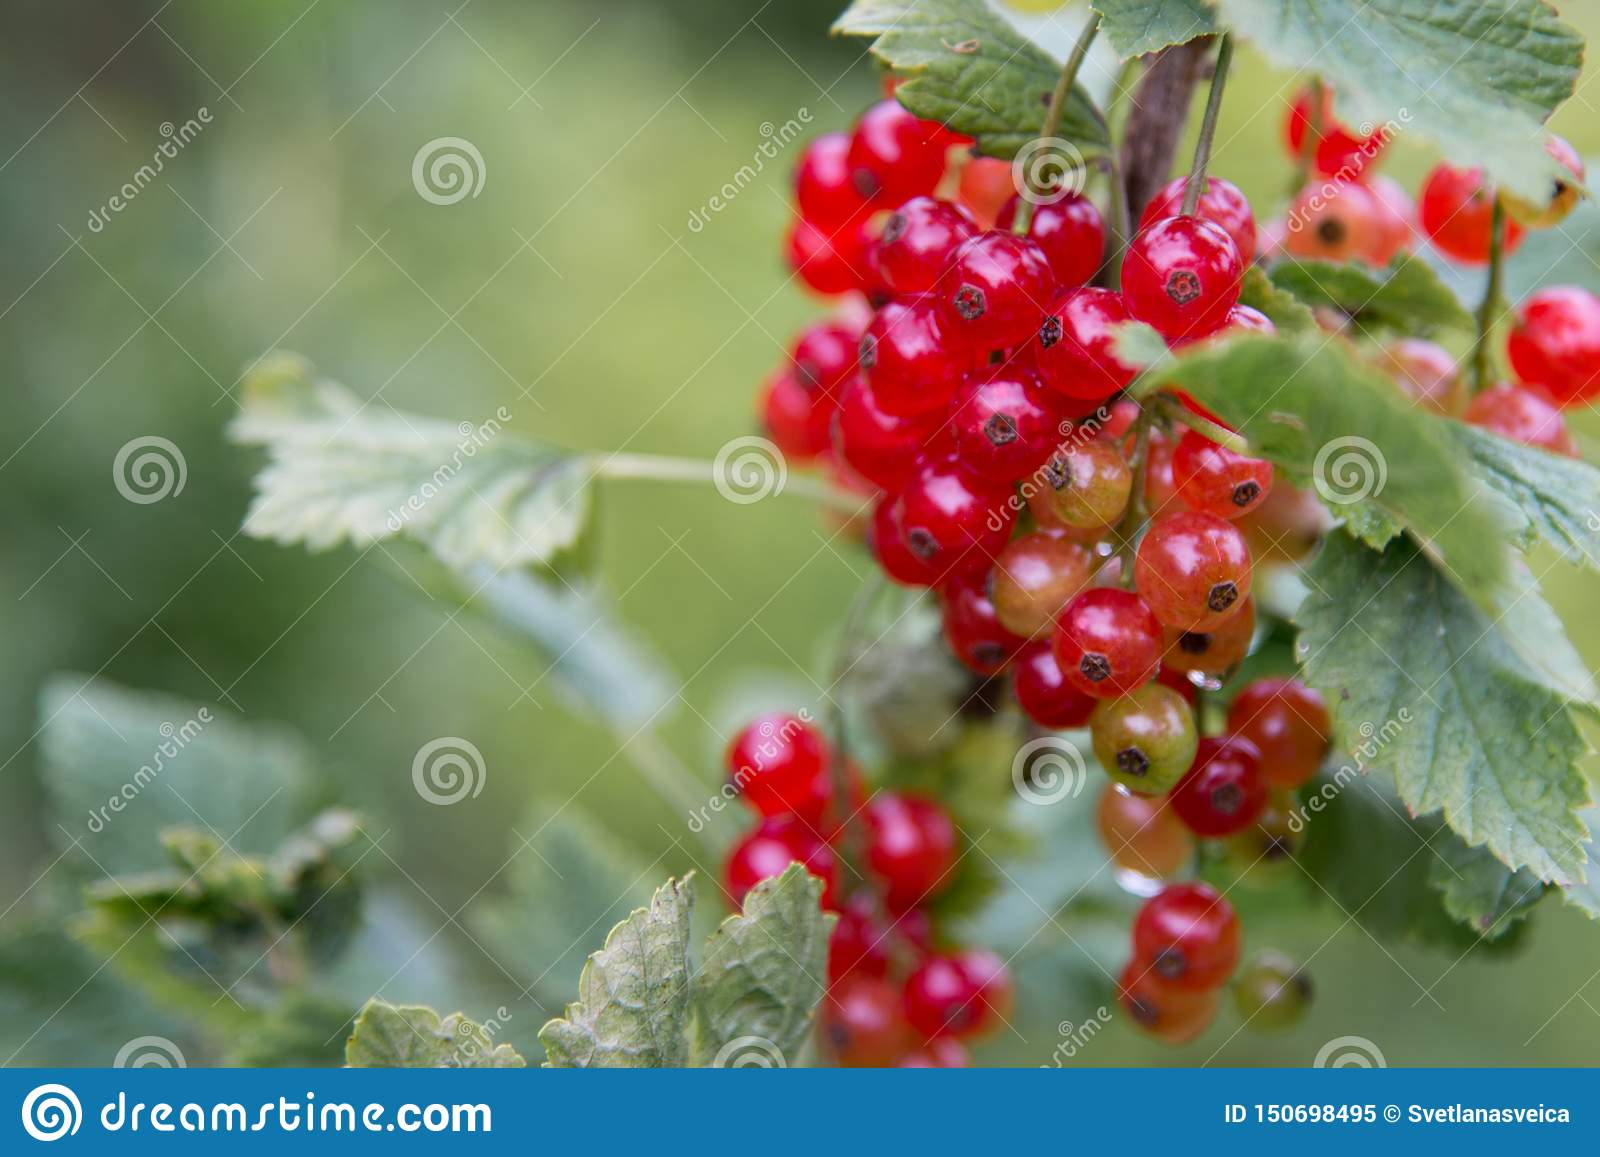 Red Currant hanging on a bush in the fruit garden.